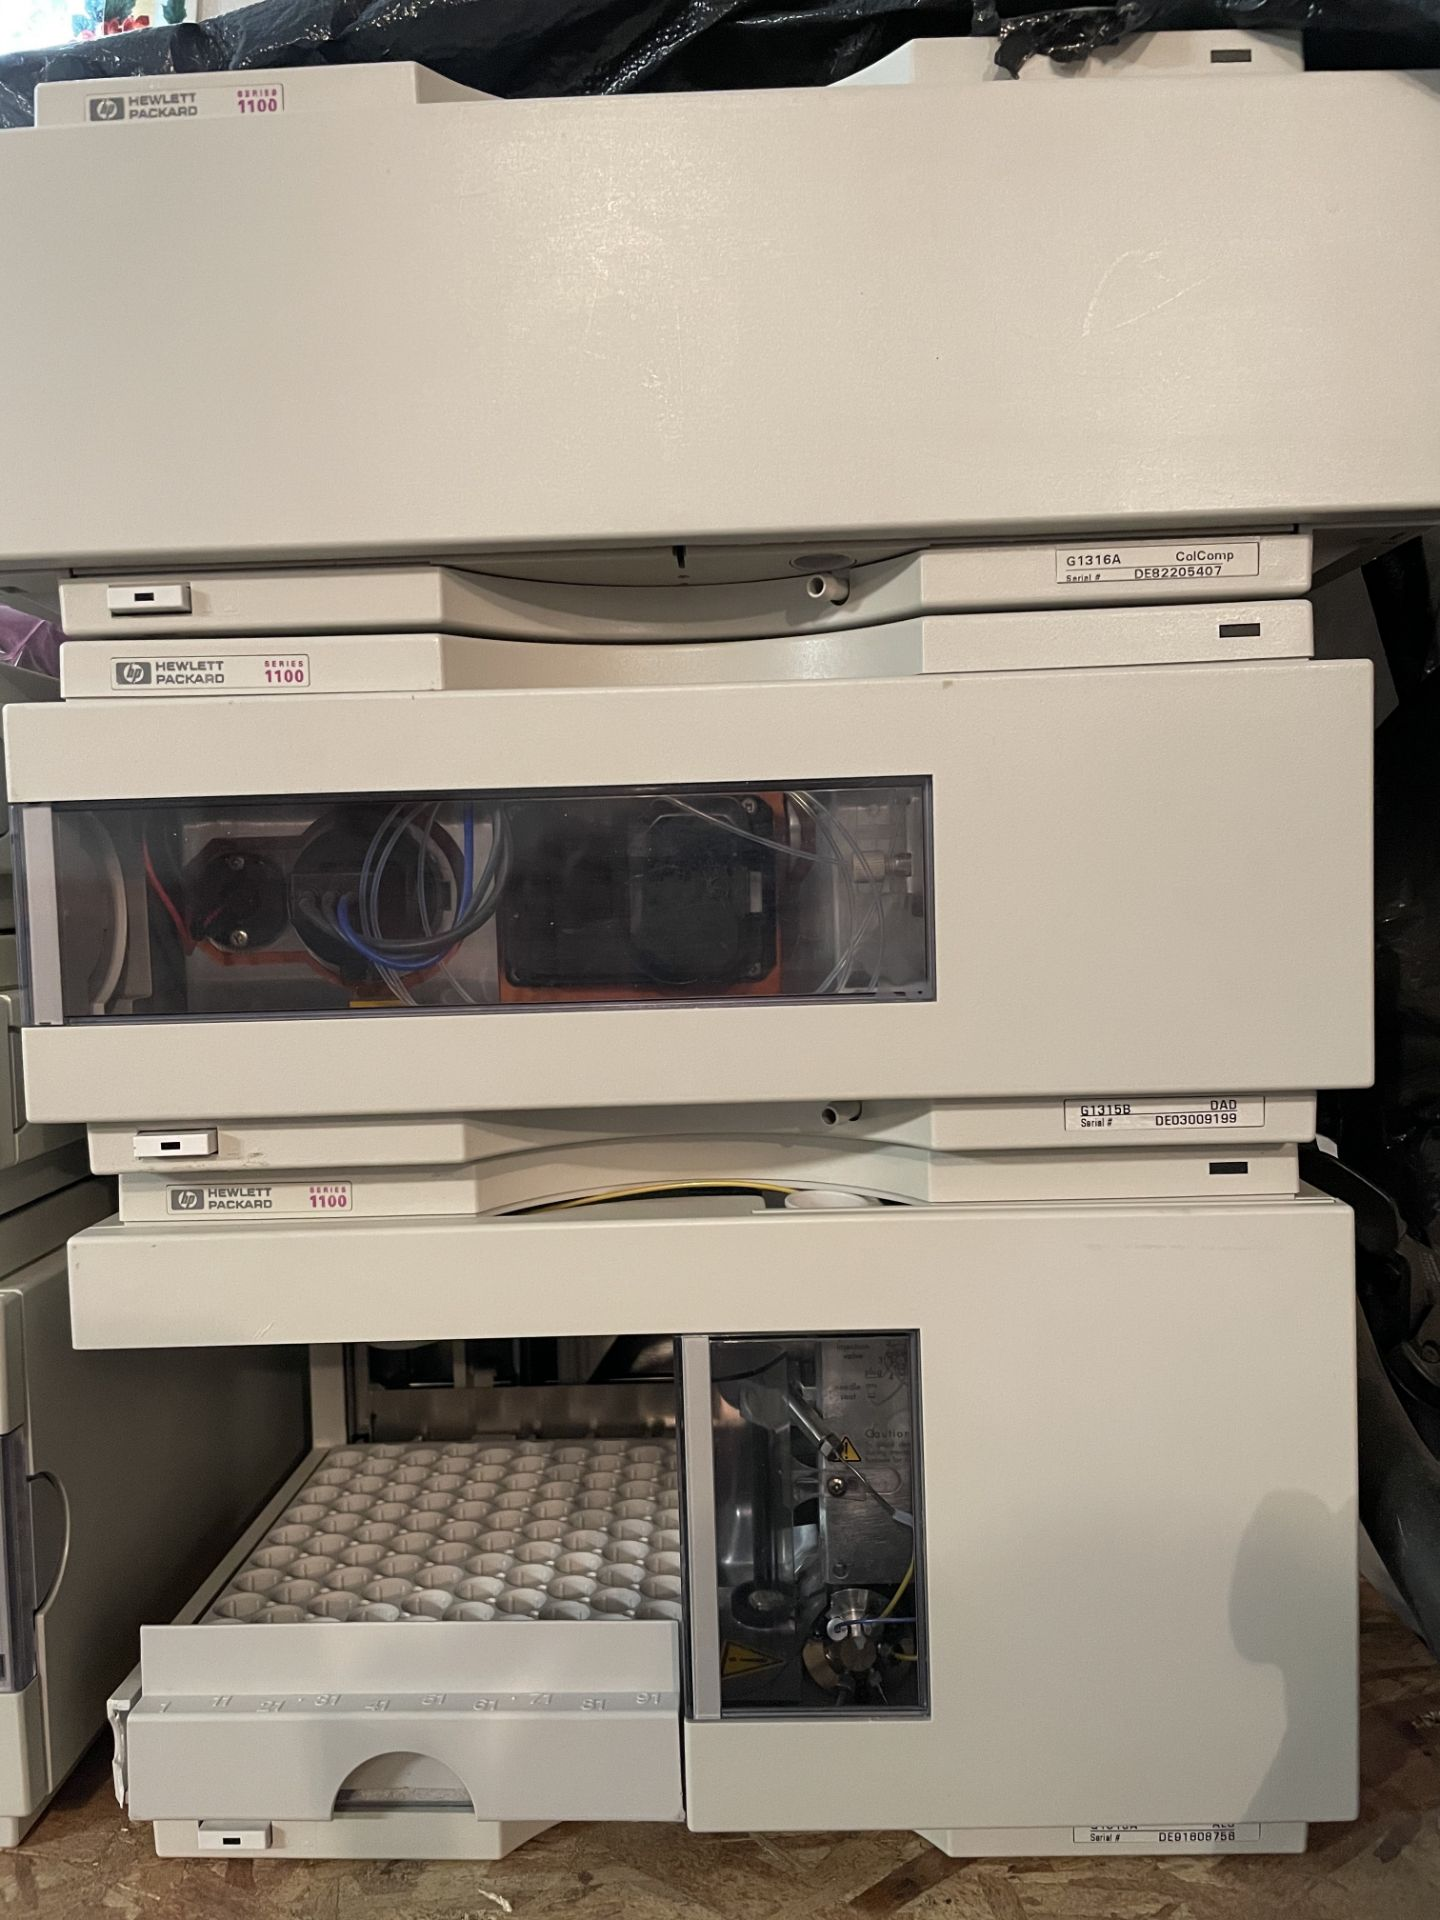 Used Agilent 1100 HPLC. Model 1100. Fully complete & functional cannabinoid potency testing system.